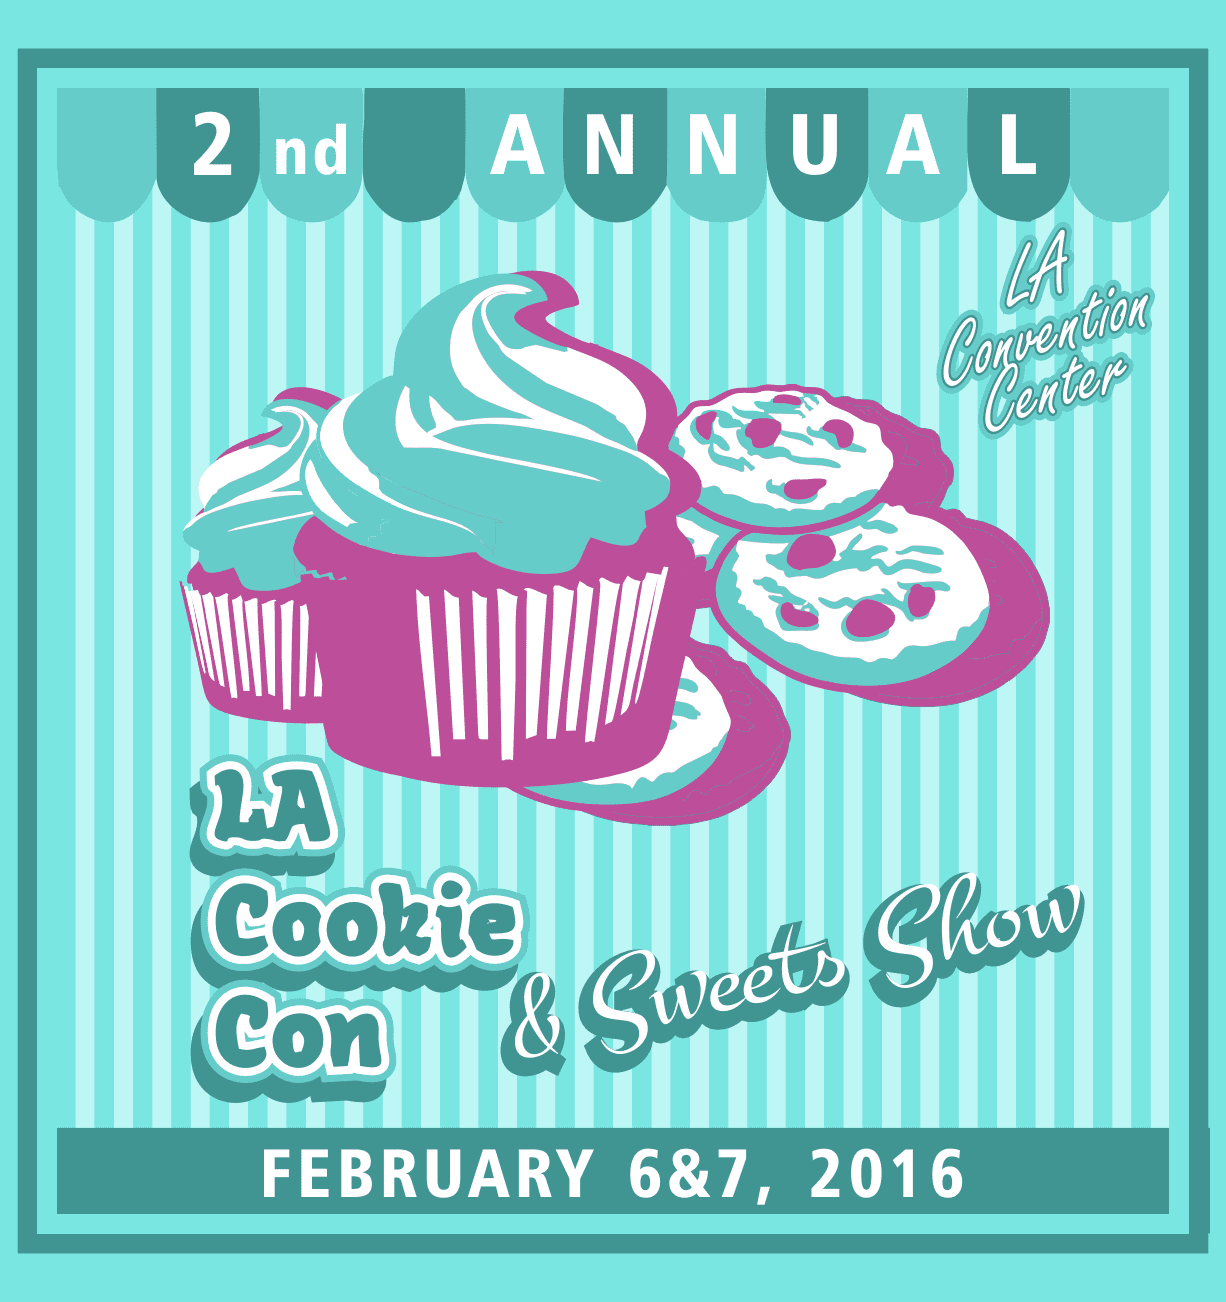 La Cookie Con And Sweets Show 2016